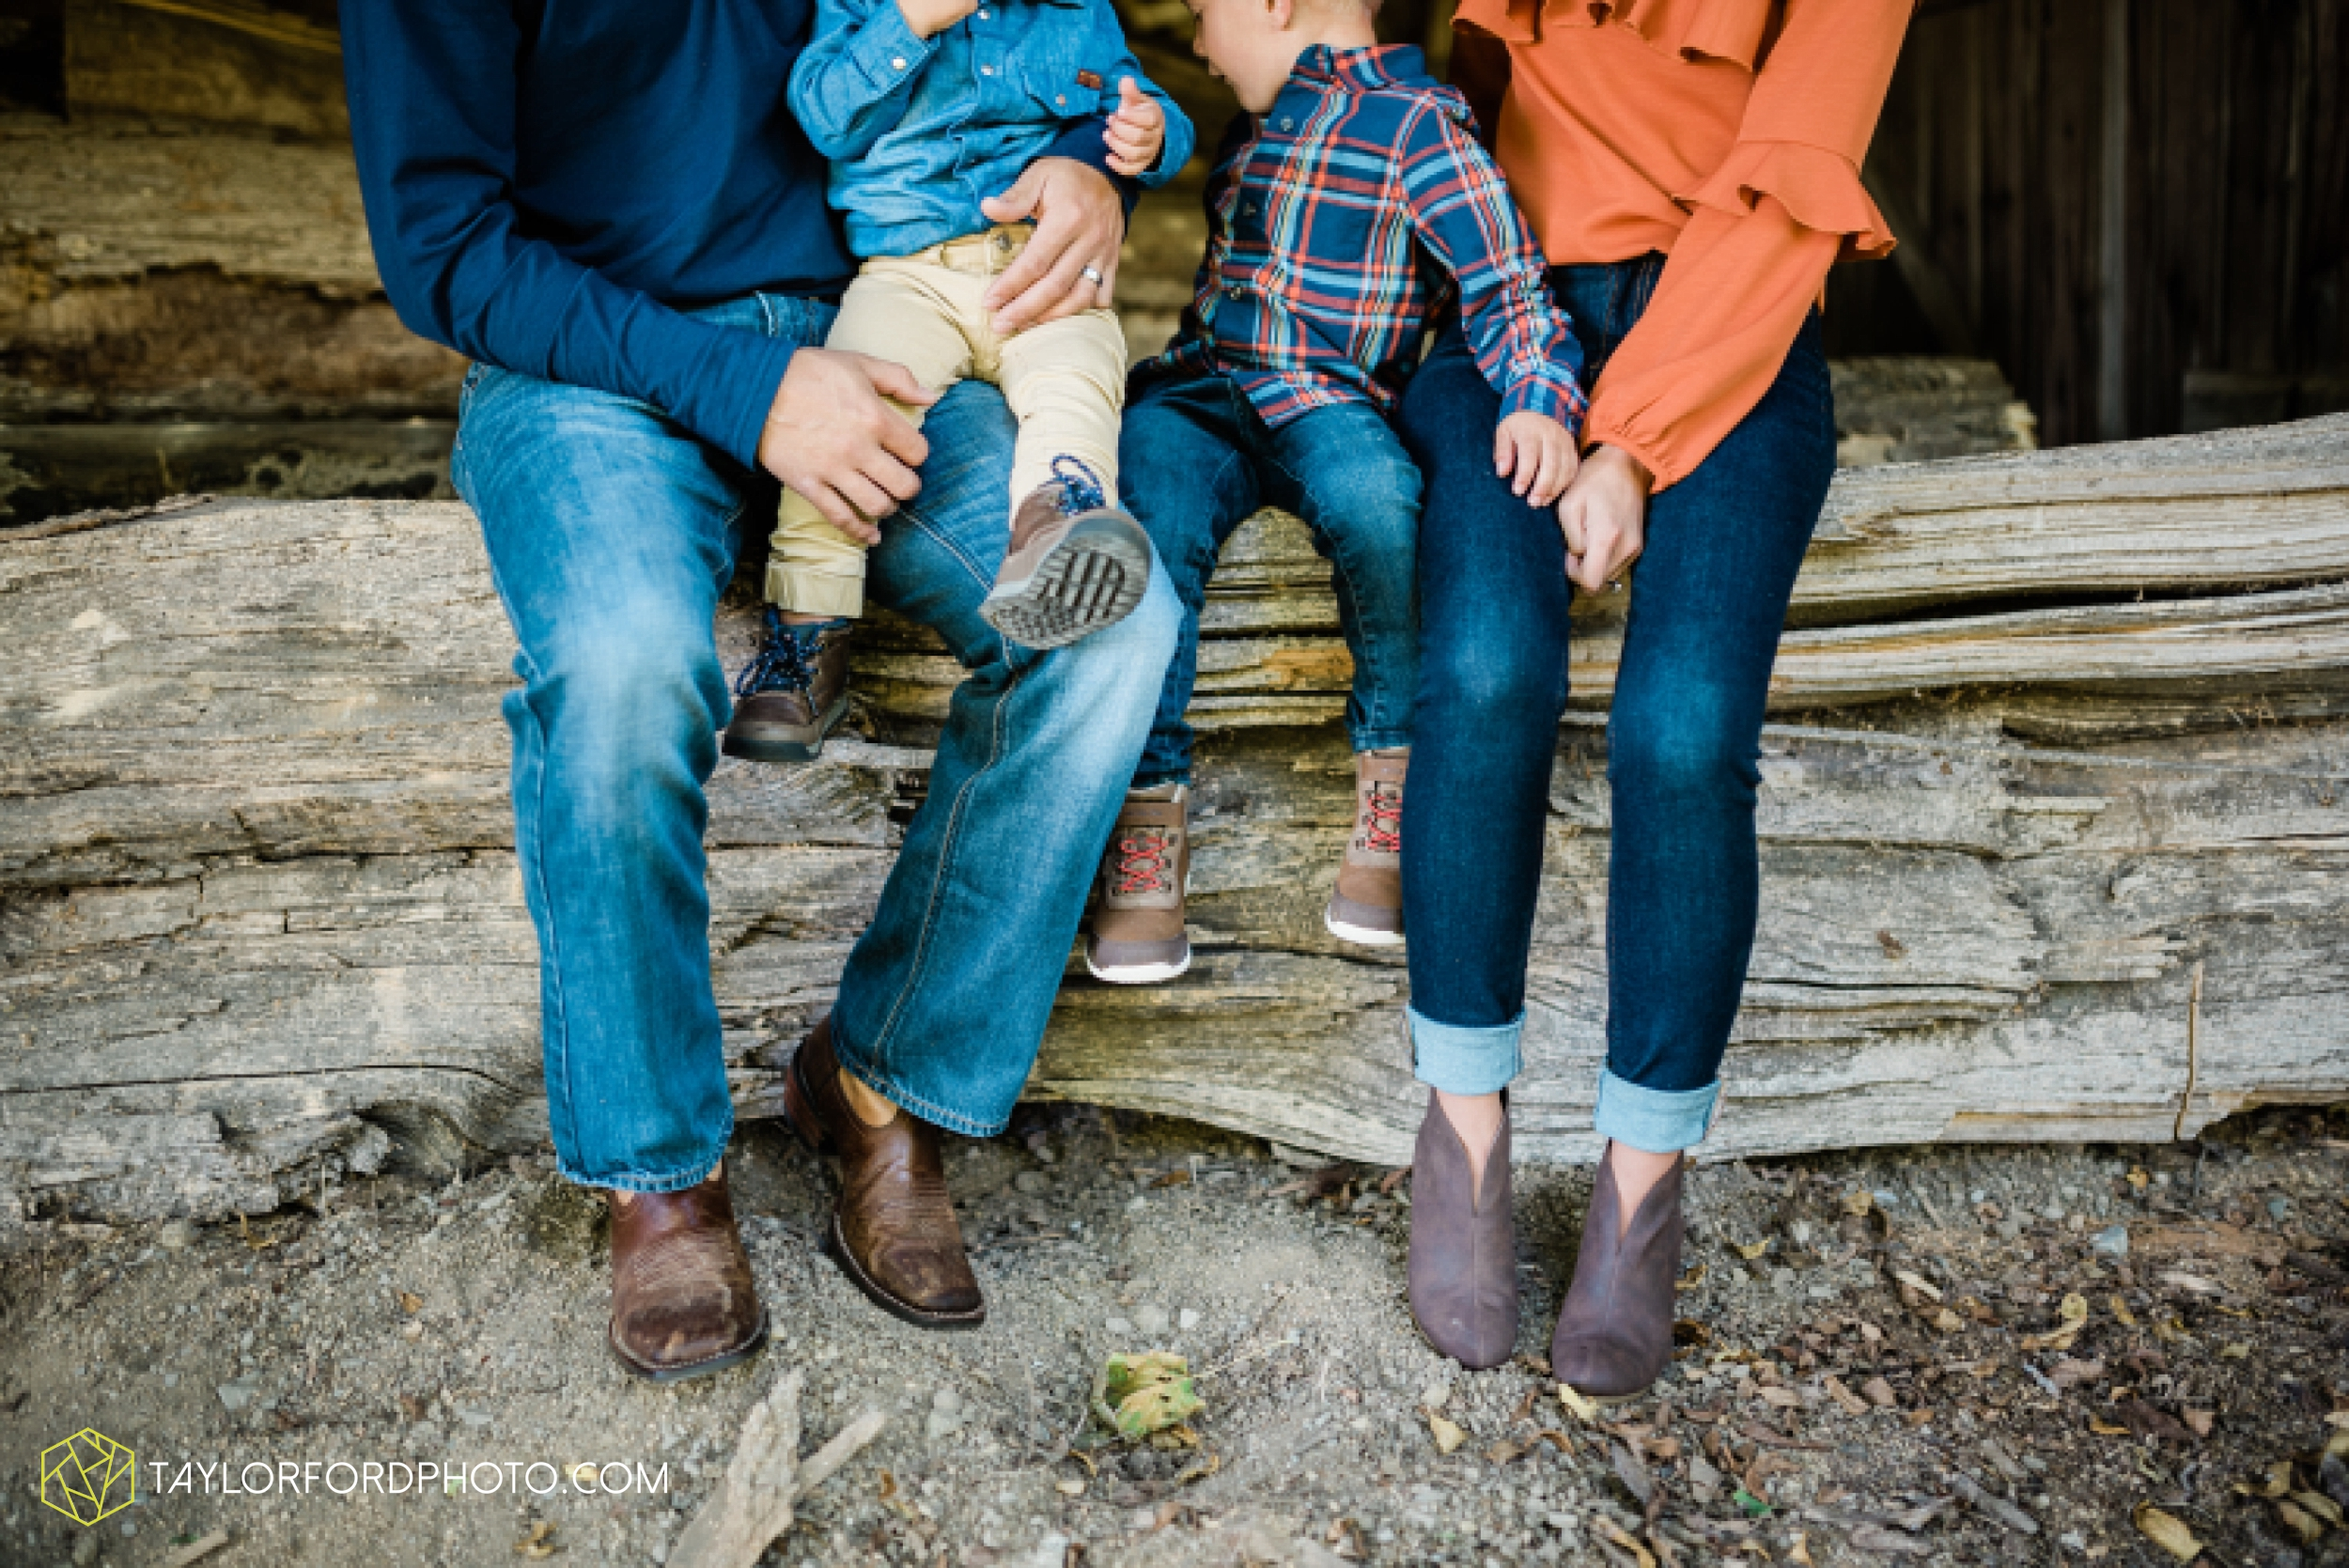 delphos-fort-jennings-ohio-at-home-lifestyle-farm-extended-family-photographer-taylor-ford-photography_0737.jpg